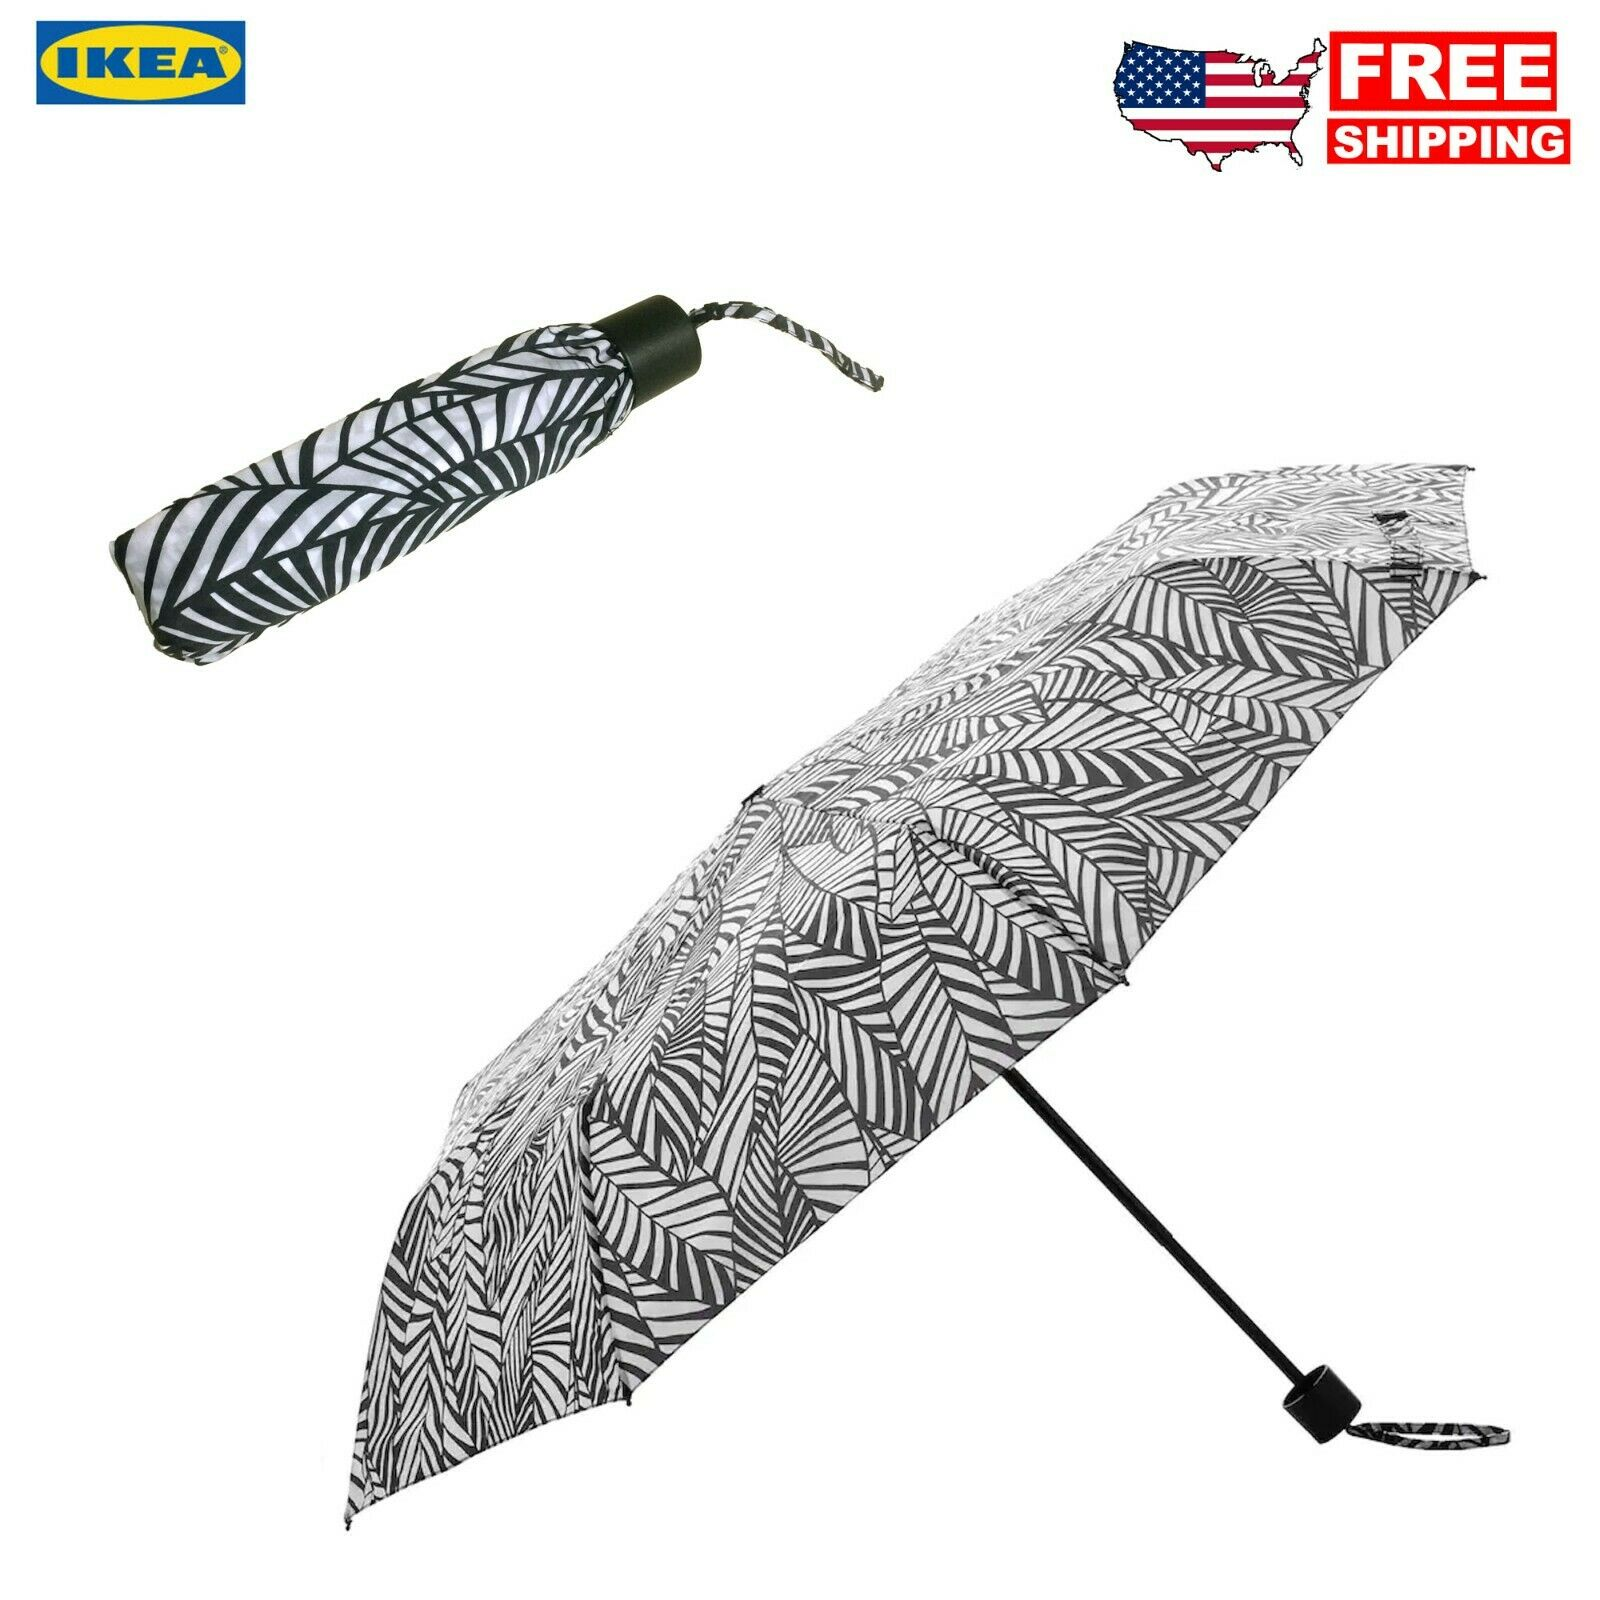 IKEA Black and White Leaf Compact Foldable Umbrella for travel and work